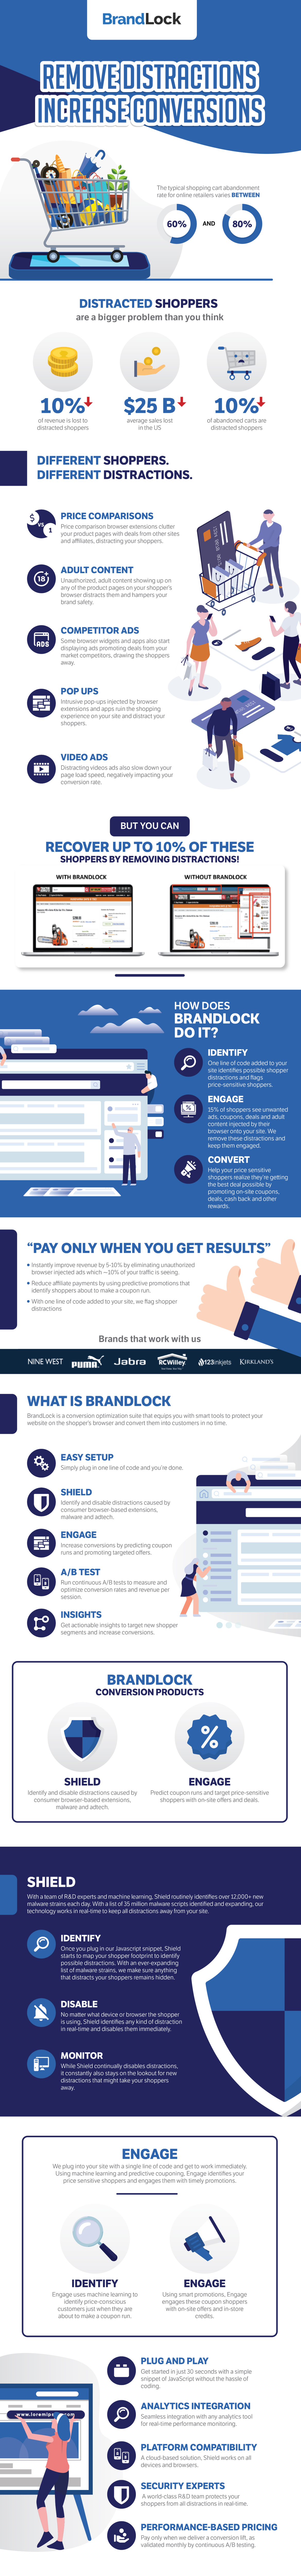 about brandlock - remove distractions, increase conversions